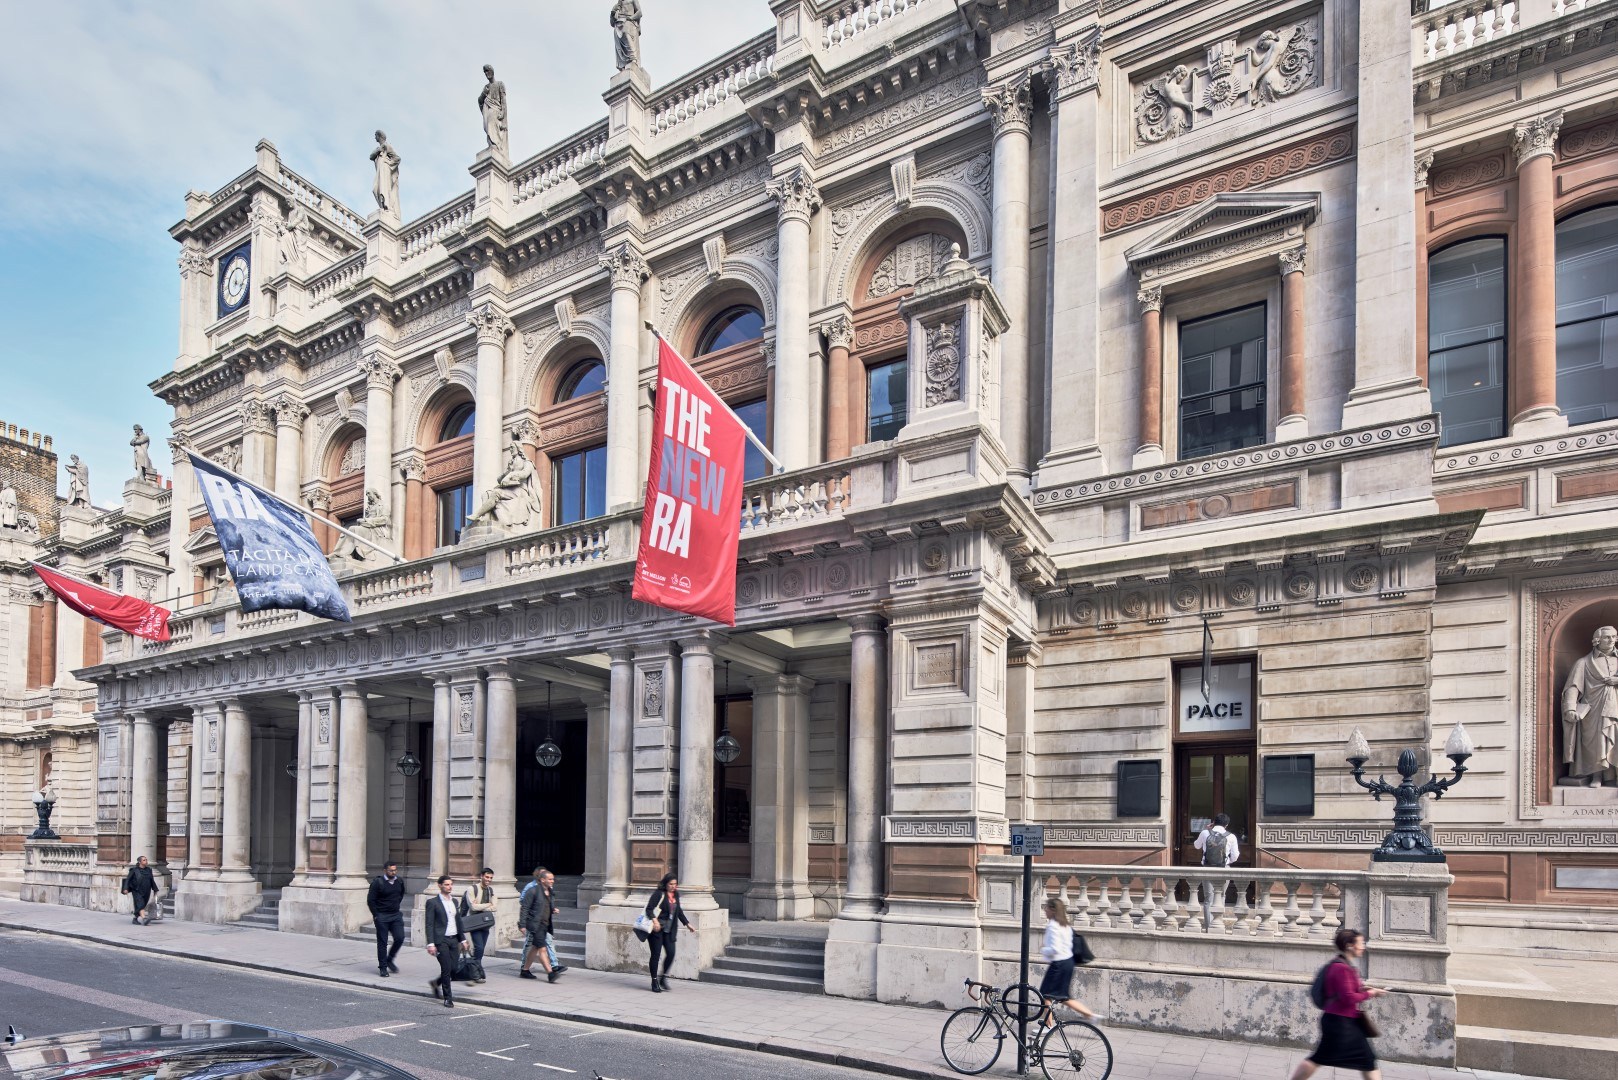 Royal Academy, Burlington House, Picca